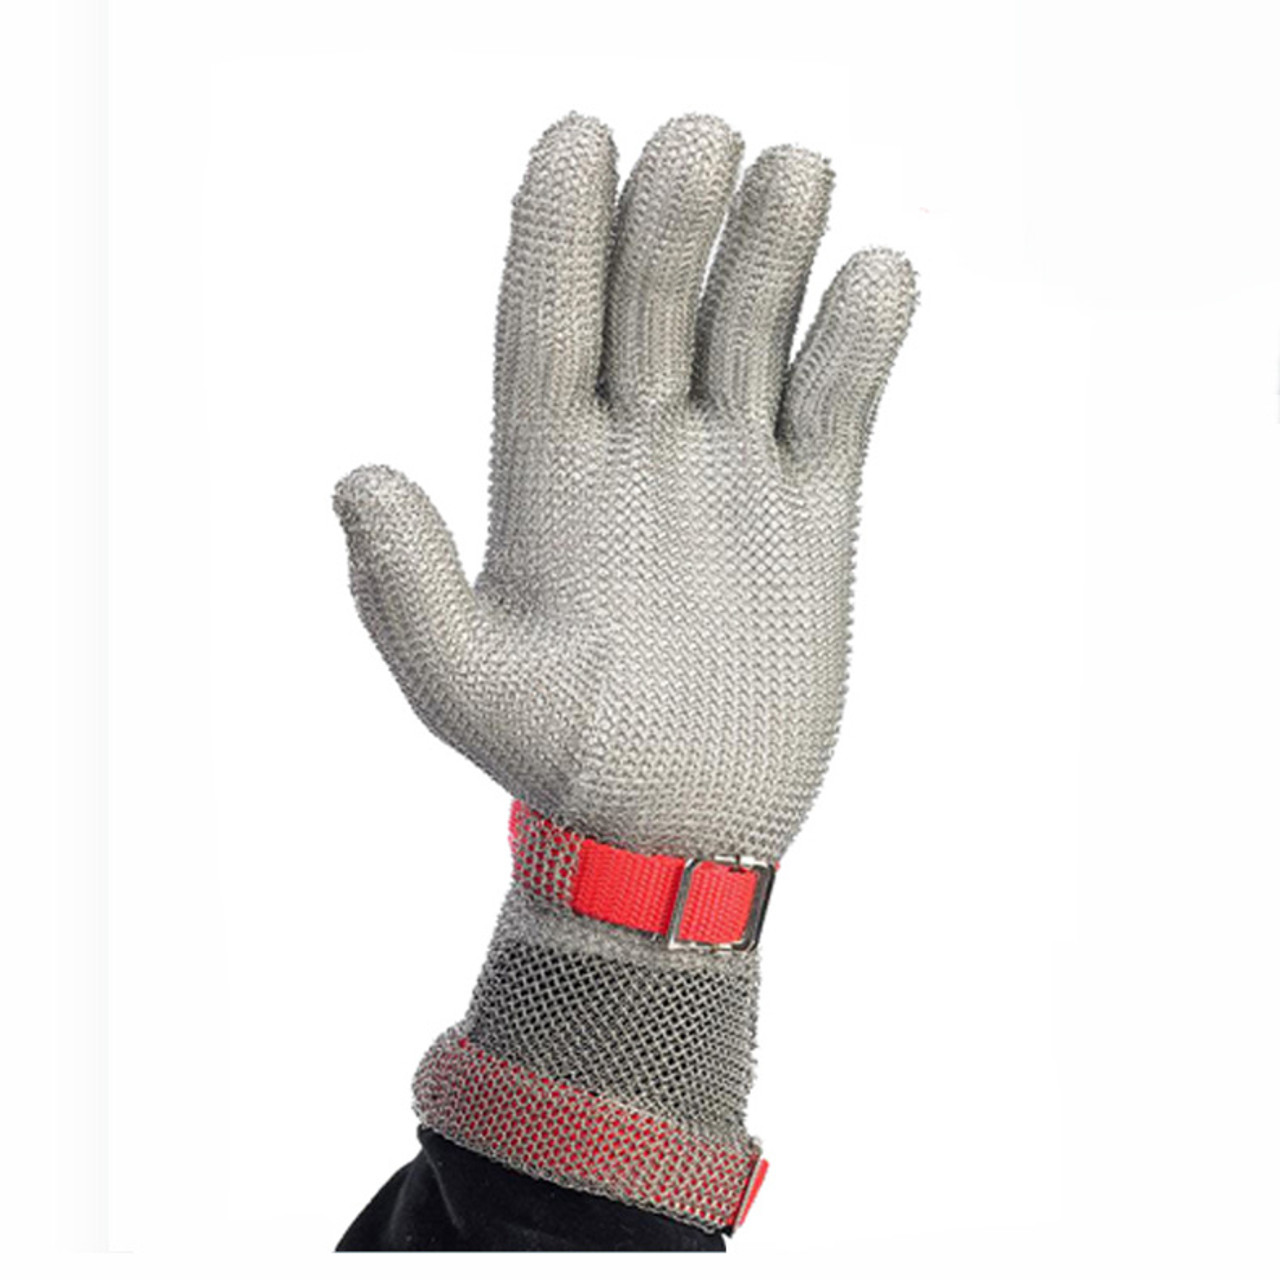 Extended Wrist Length Stainless Steel Safety Glove